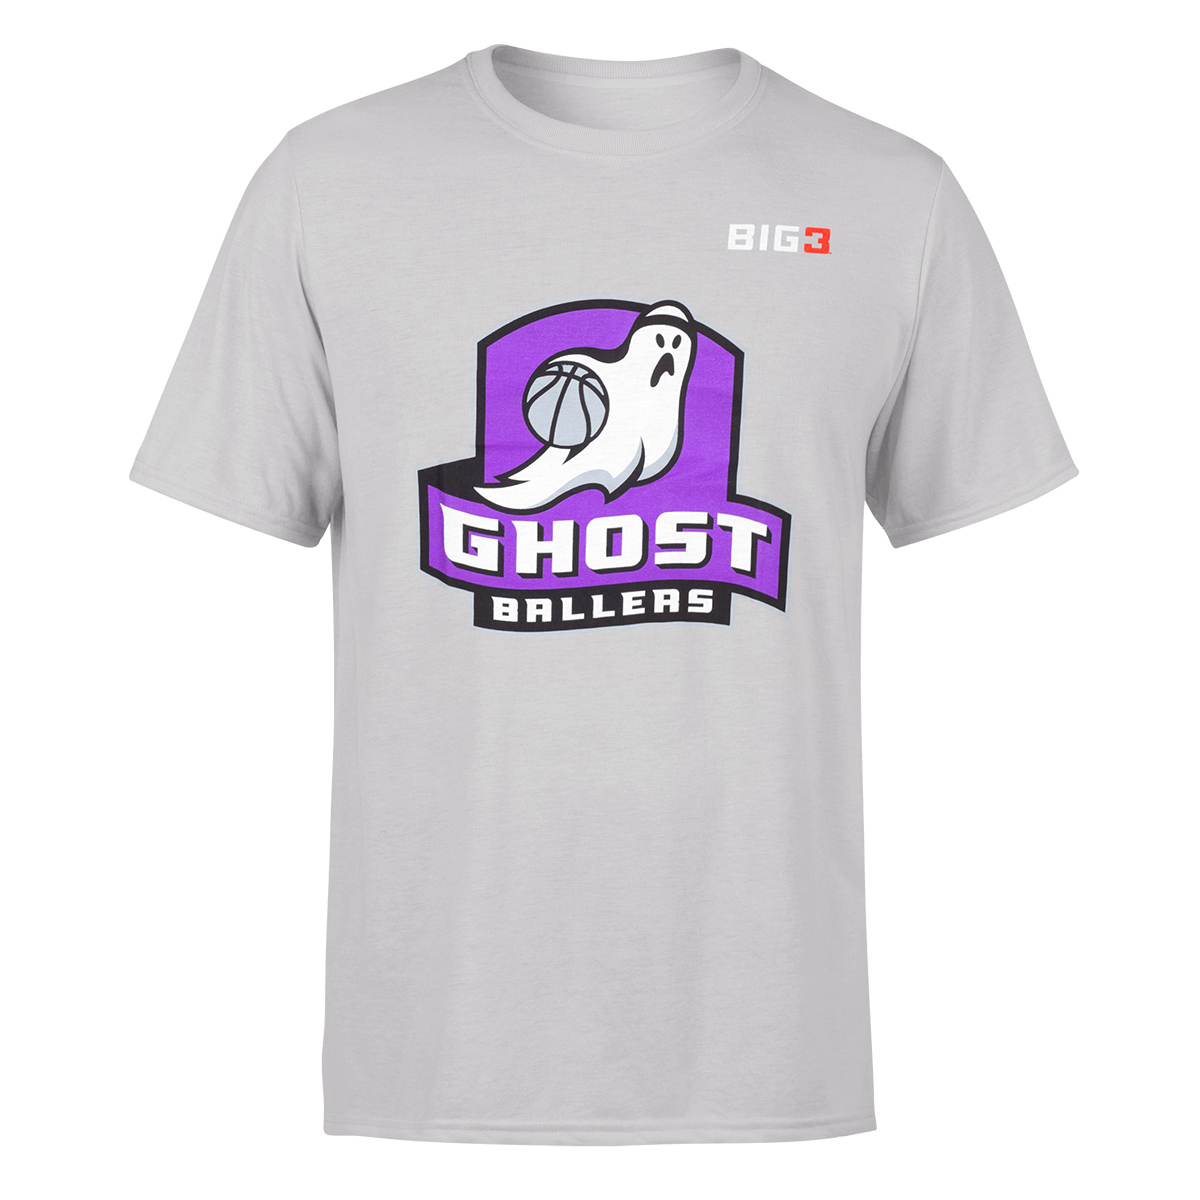 Ghost Ballers - Grey T-Shirt